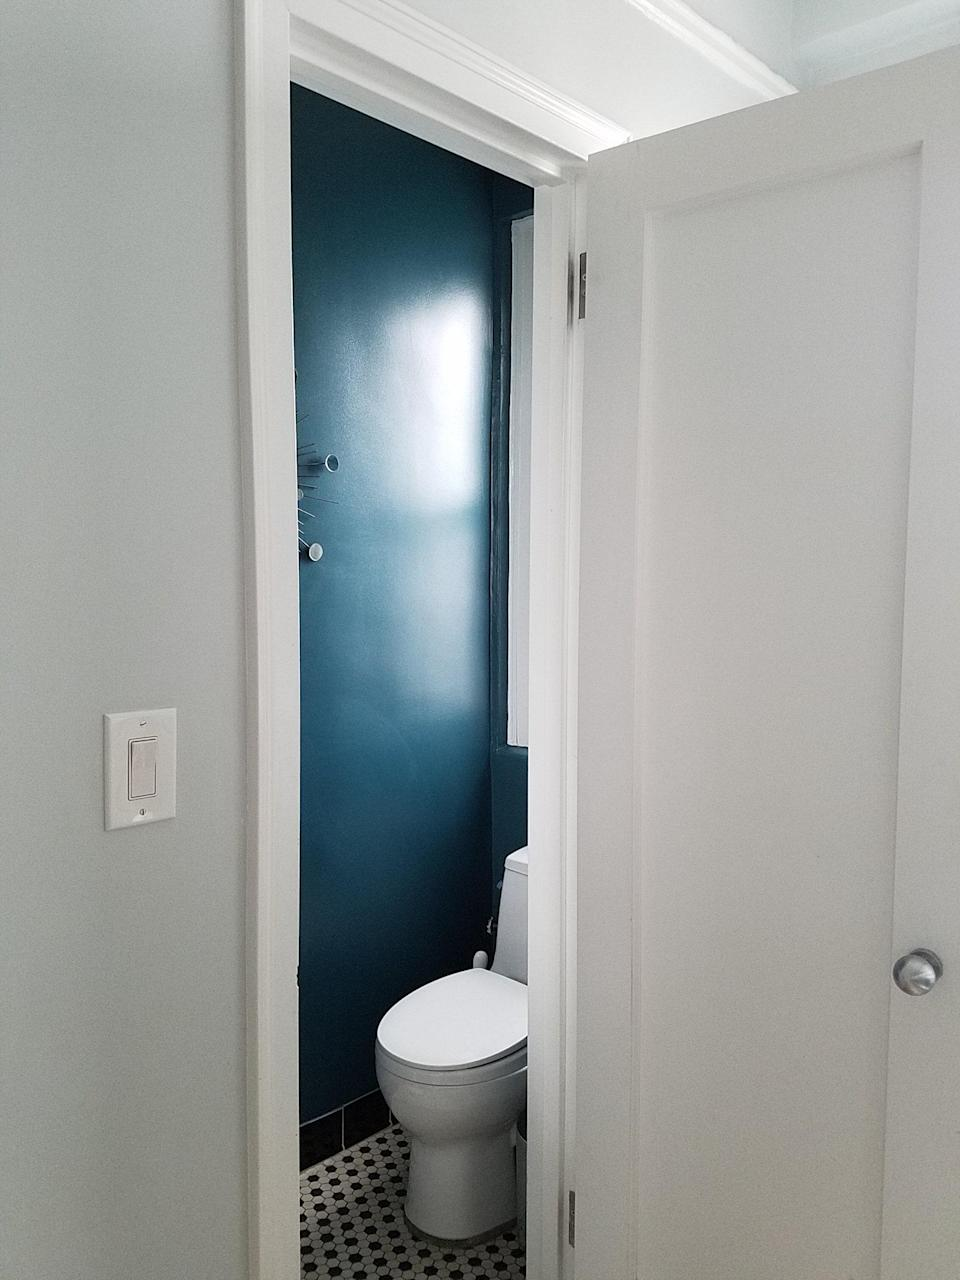 """BEFORE: """"We moved the bathroom because it was occupying a window that we wanted to incorporate into a guest bedroom,"""" Frederick confesses. """"We lost natural light in the bathroom but we gained a guest room space."""" The team then decided to create a dark, moody atmosphere."""